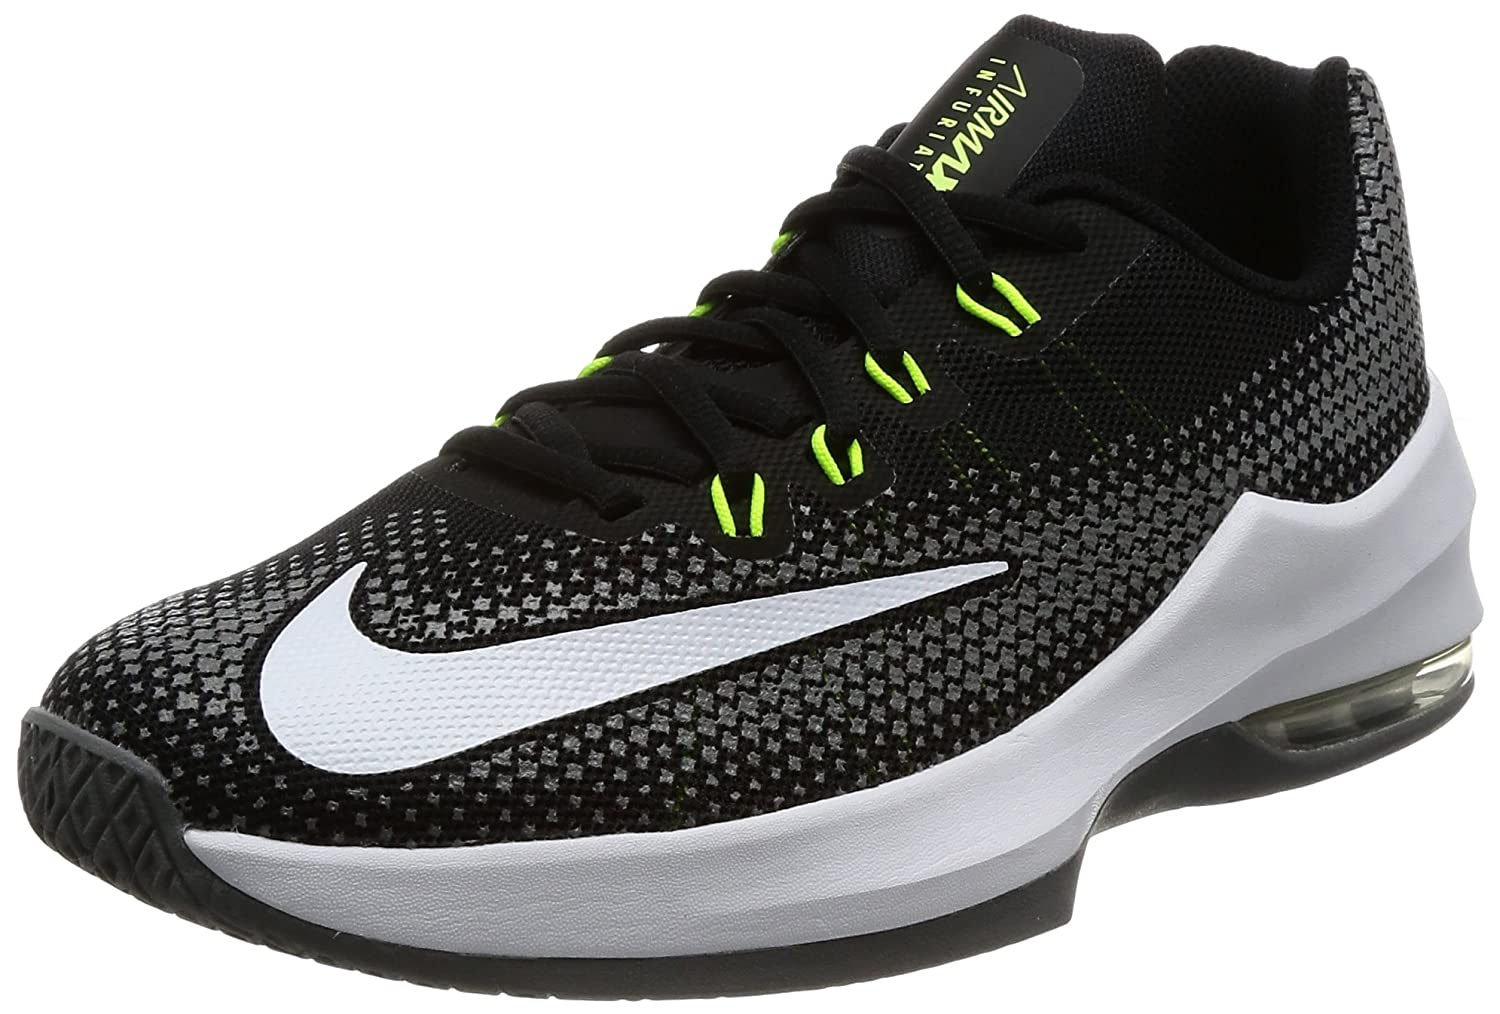 8ff81a1b77 Amazon.com | NIKE Boy's Air Max Infuriate (GS) Basketball Shoe 869991 005 |  Athletic